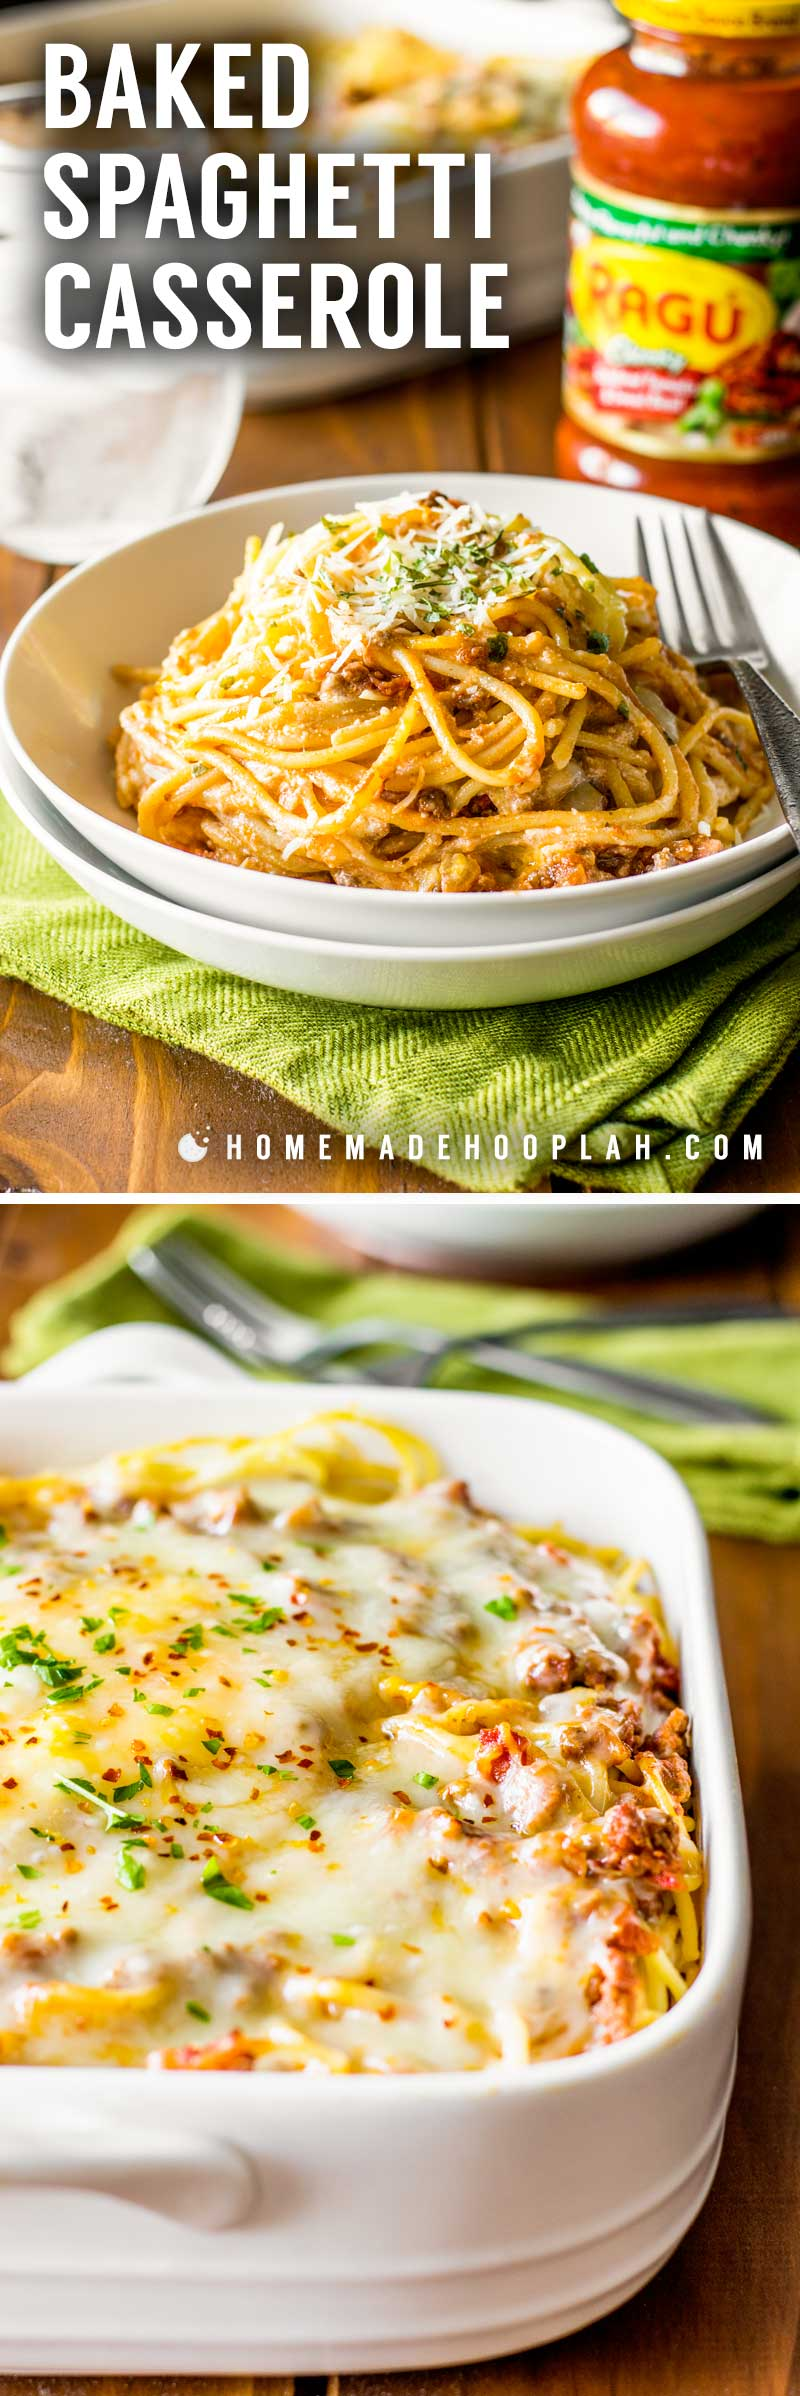 Baked Spaghetti Casserole! Revamp boring spaghetti by baking it in a deep dish filled with delicious cheeses, savory meats, and a flavorful red sauce. An easy weeknight dinner! | HomemadeHooplah.com